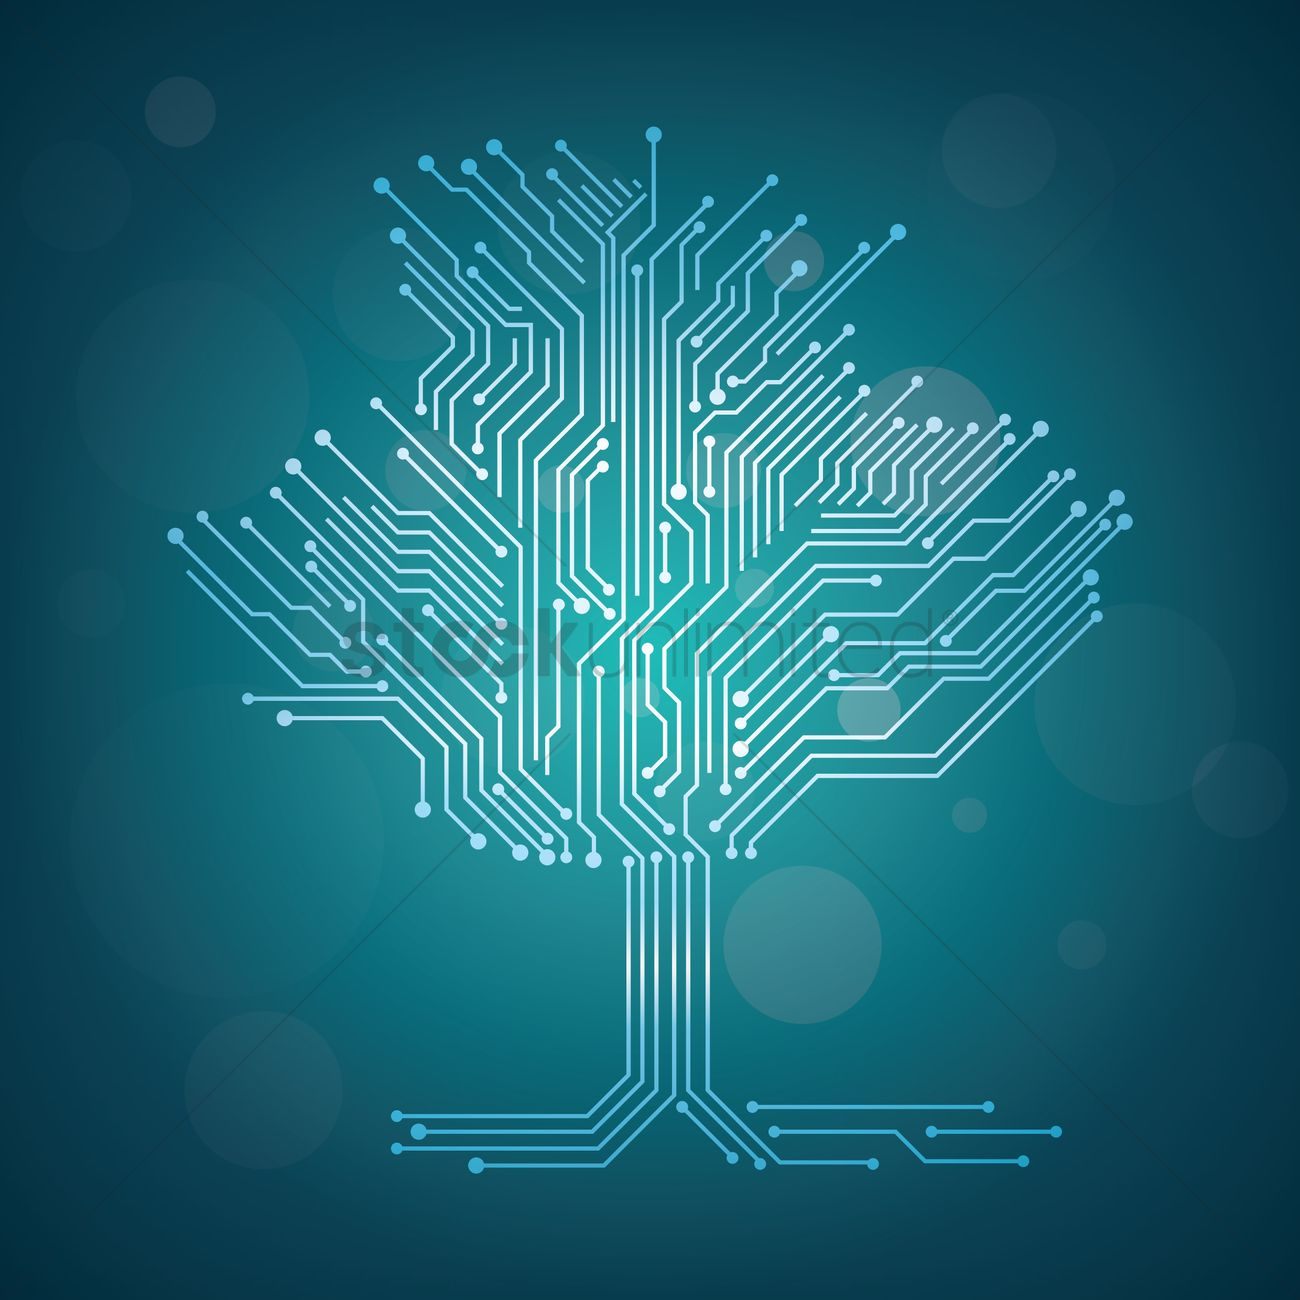 Circuit board tree design Vector Image - 1948229 | StockUnlimited